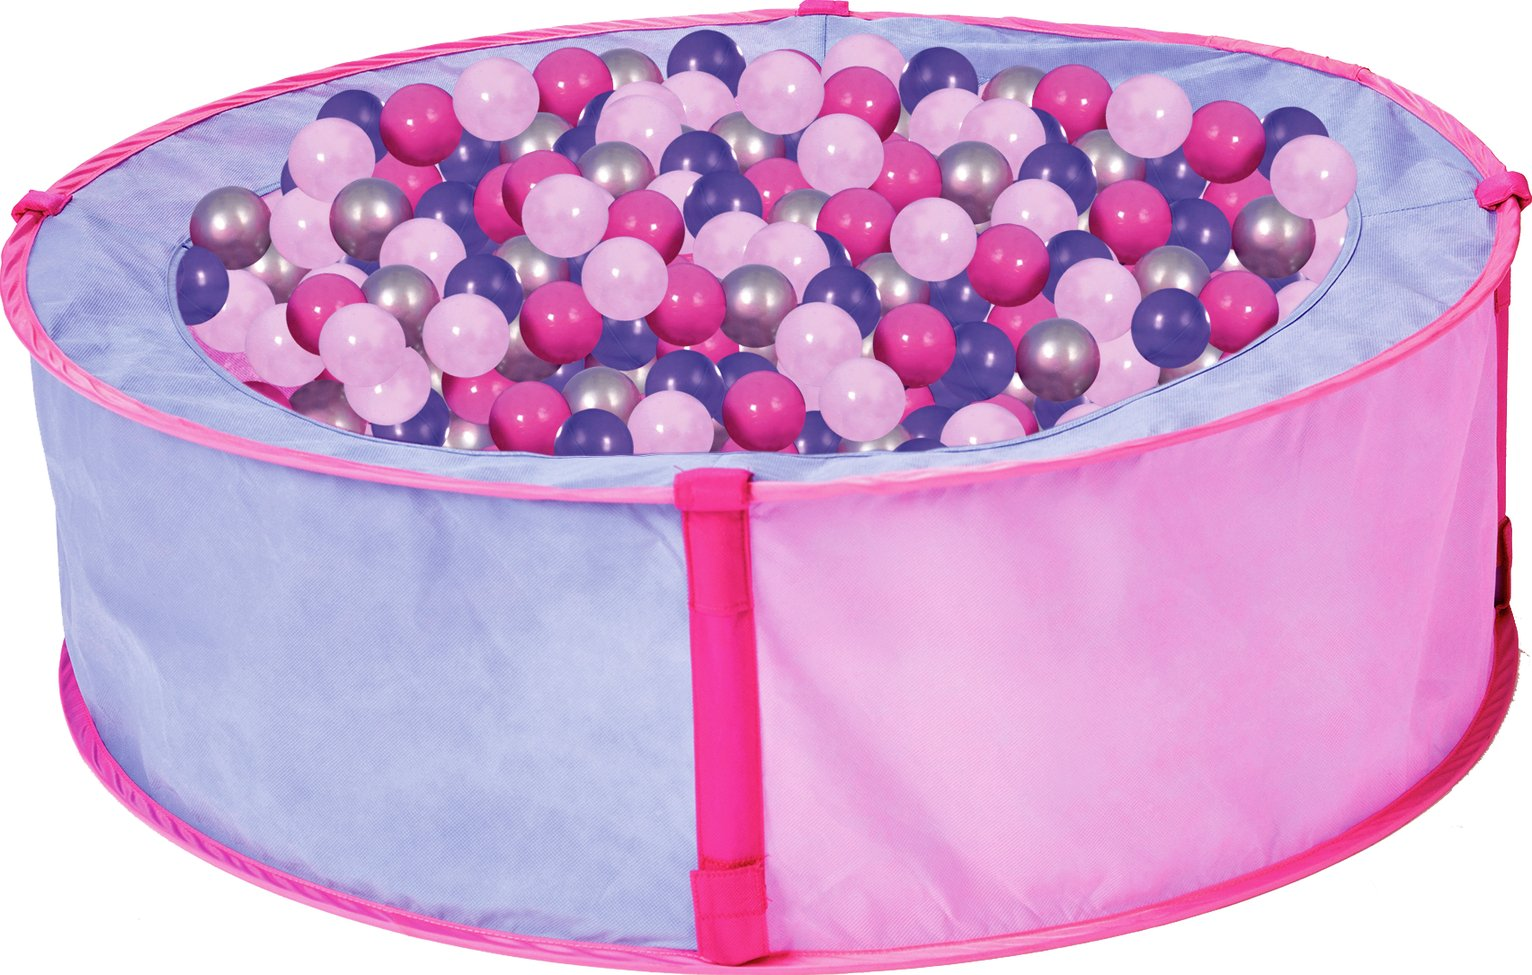 Chad Valley Pink Pop Up Ball Pit review